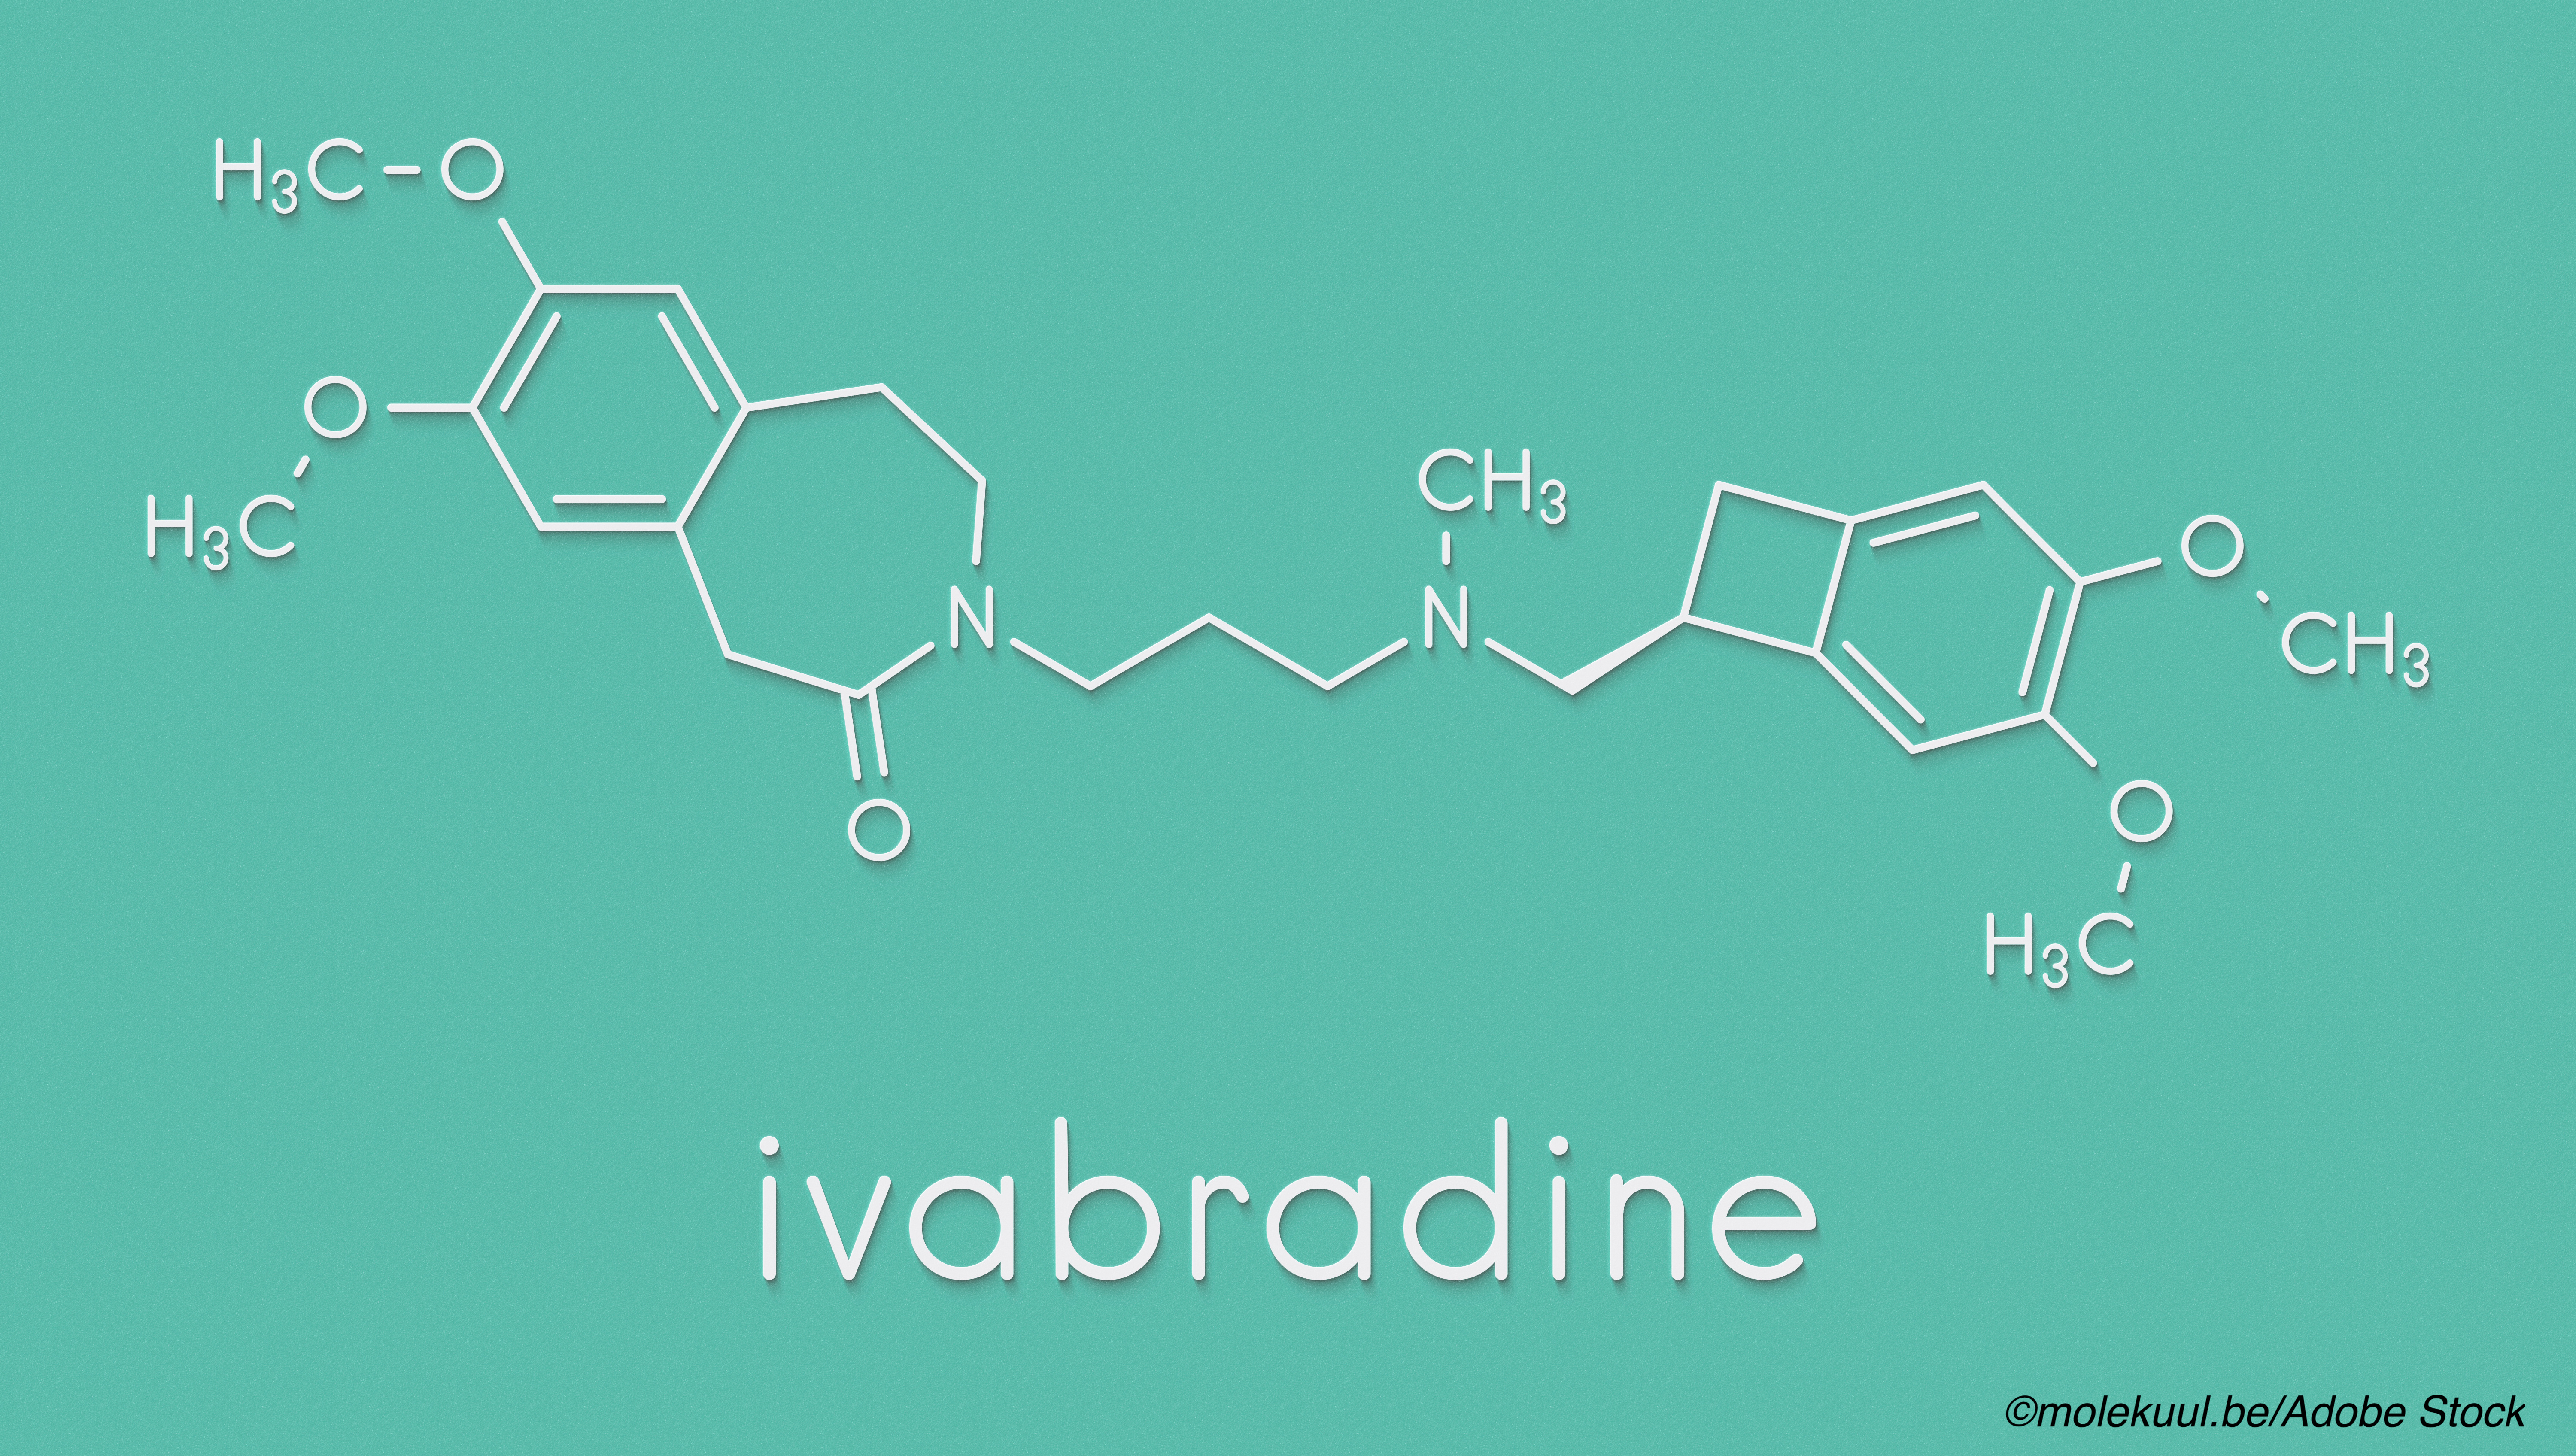 Ivabradine Shows Promise as Tx for Hyperadrenergic POTS